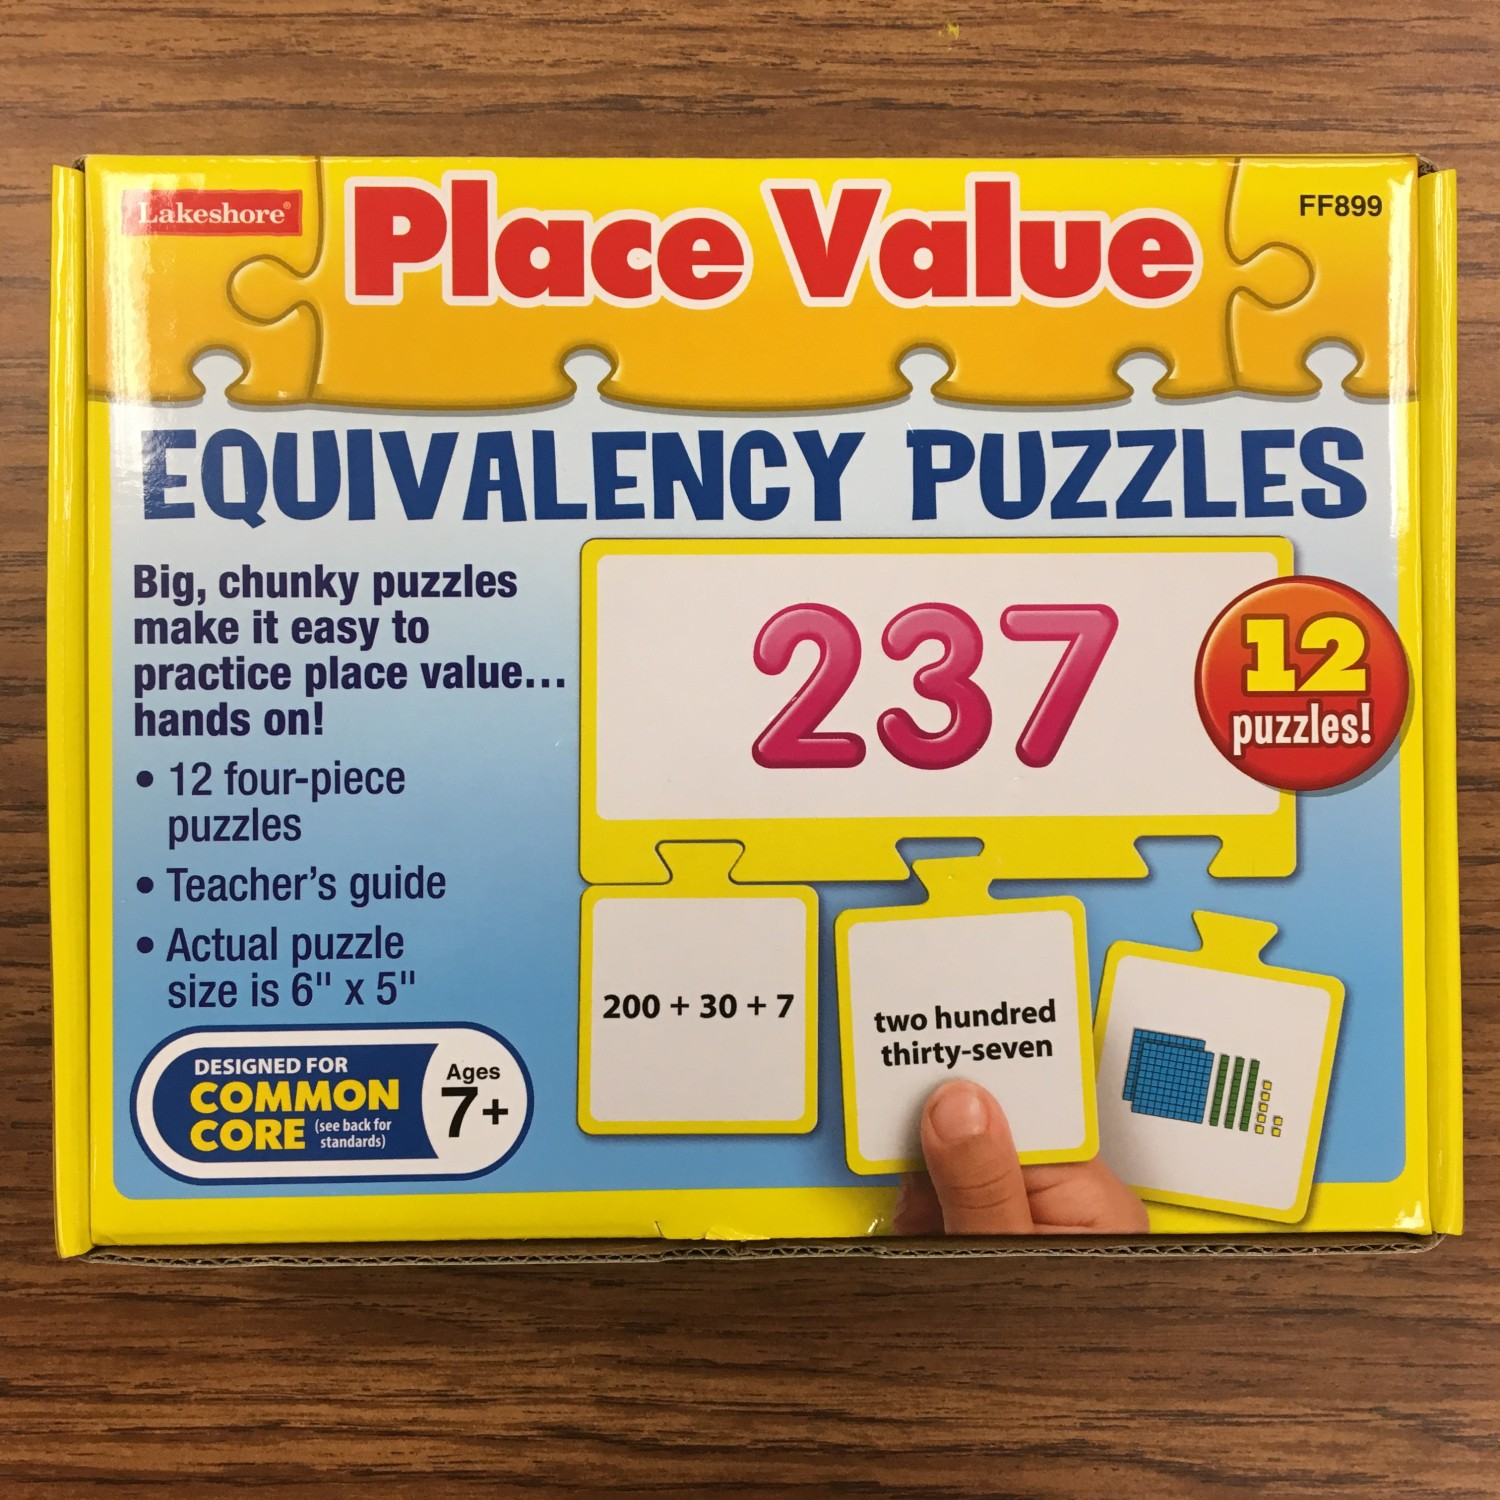 place value equivalency puzzles